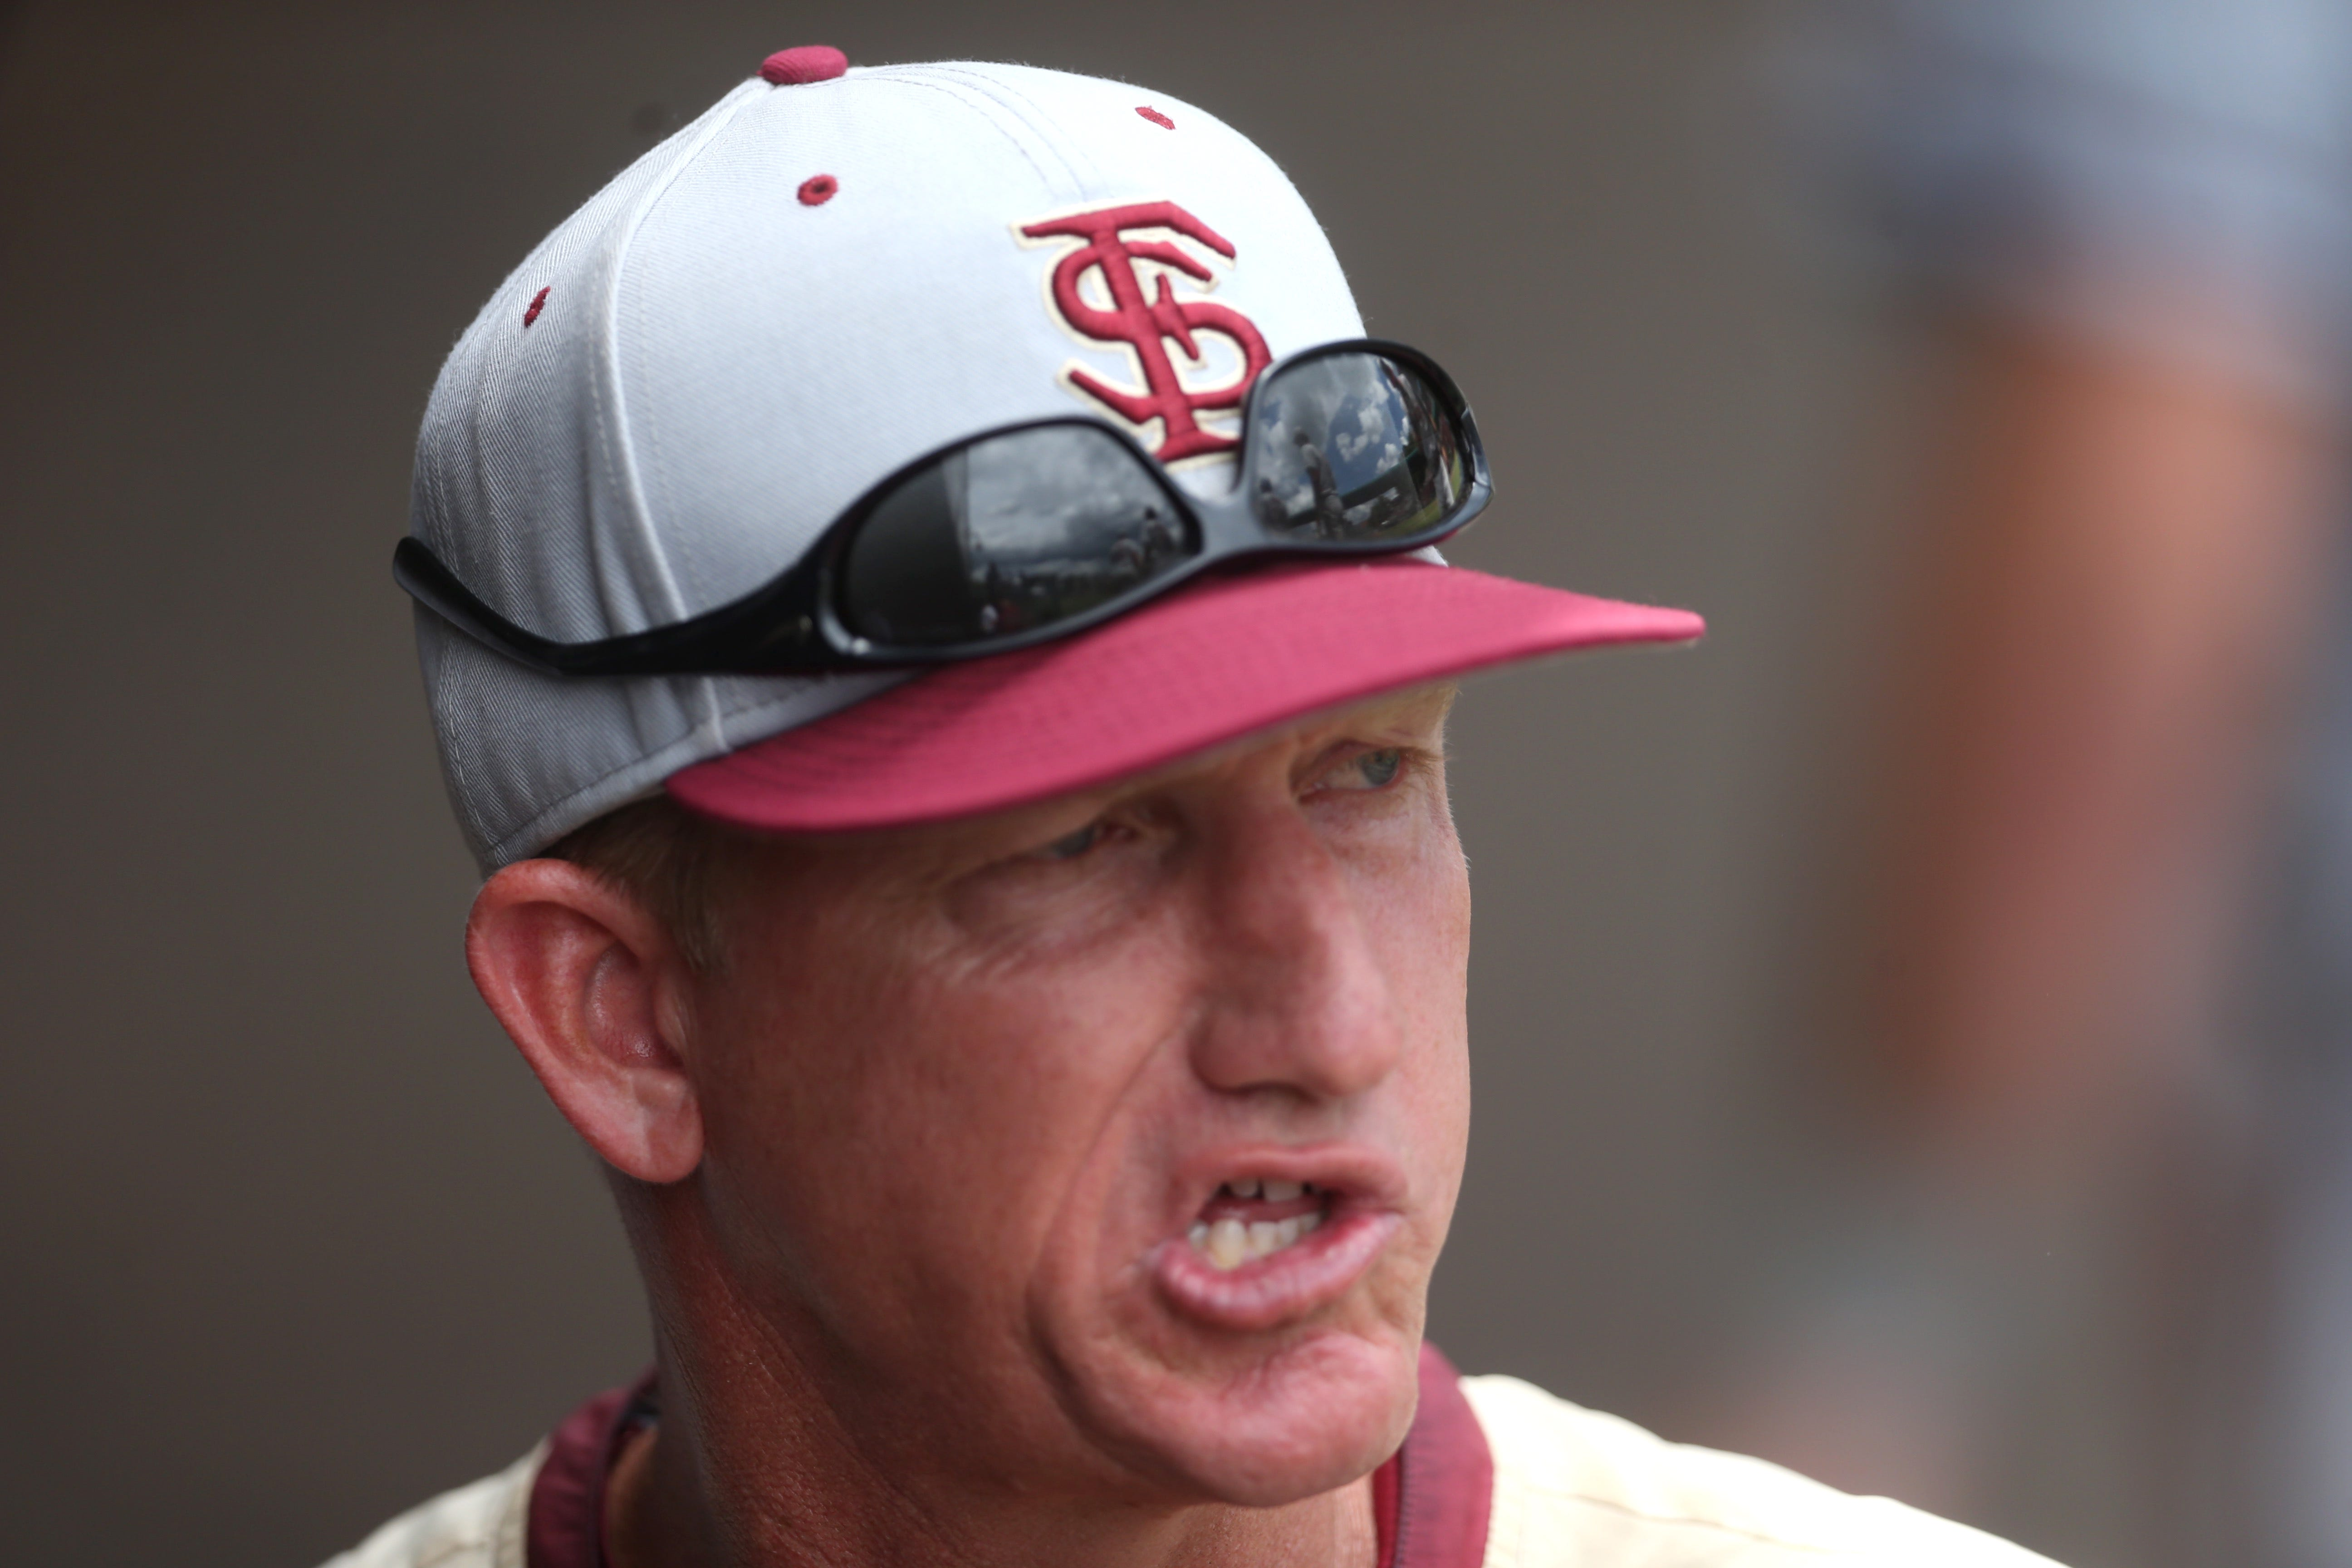 FSU Associate Head Coach Mike Bell Yells Out To His